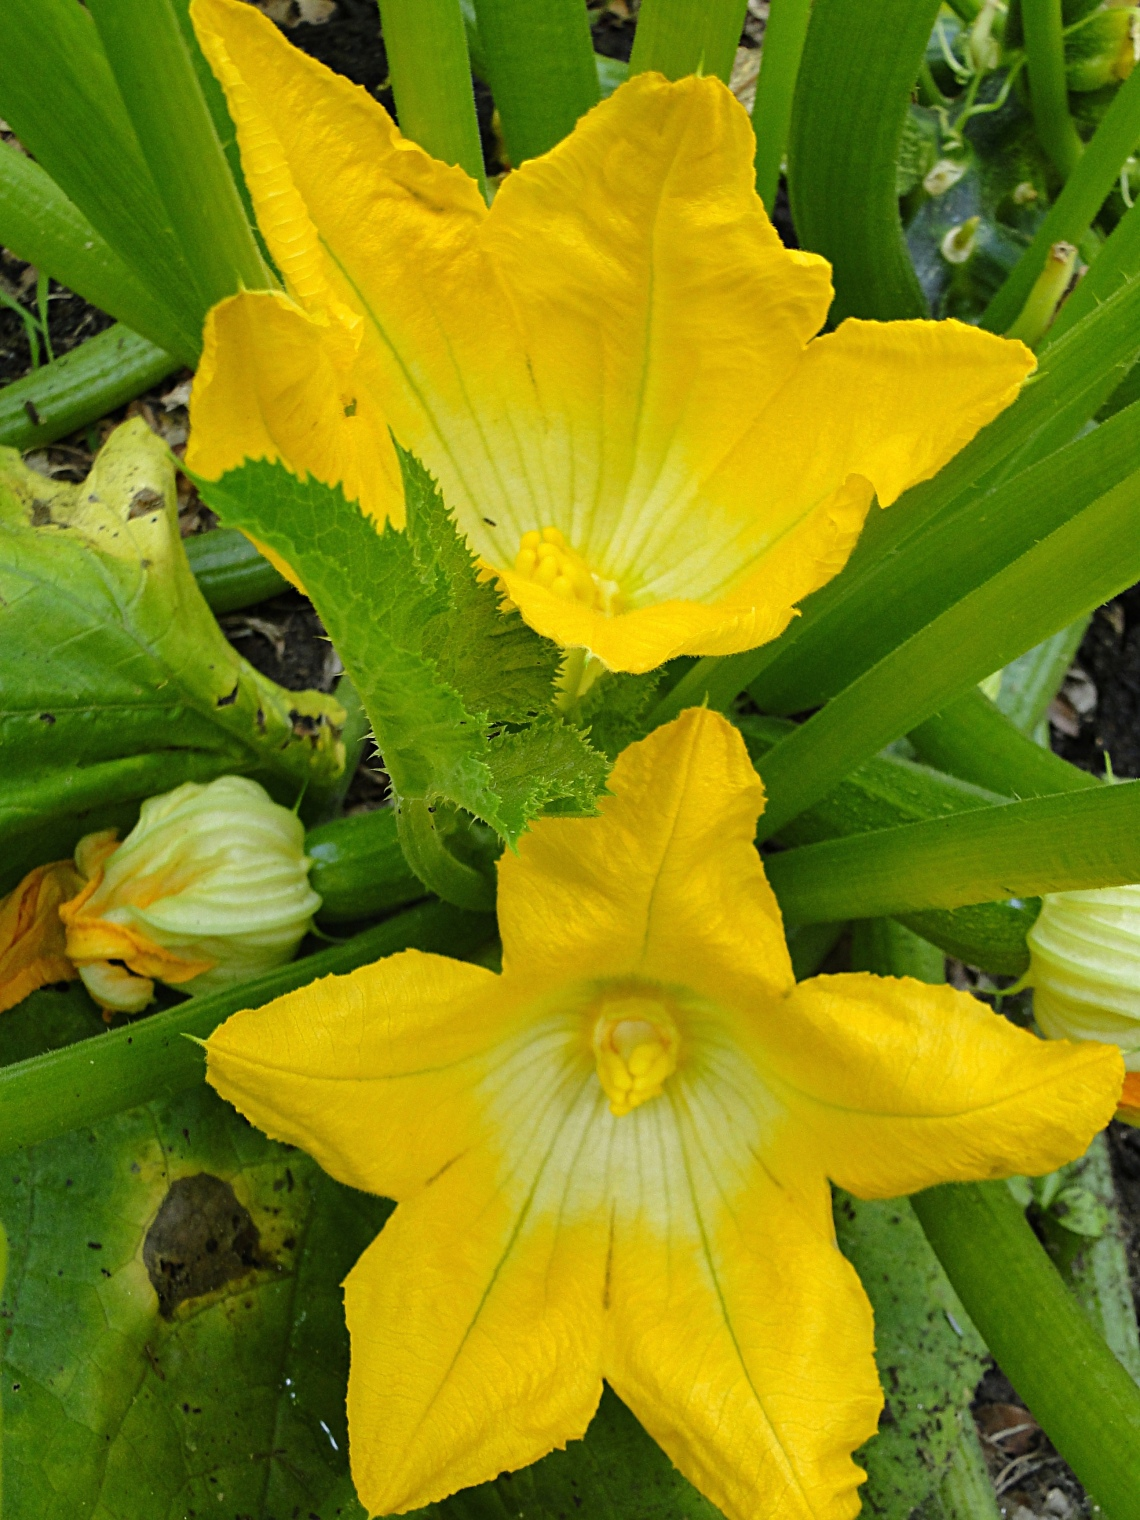 summer squash plant with yellow flowers